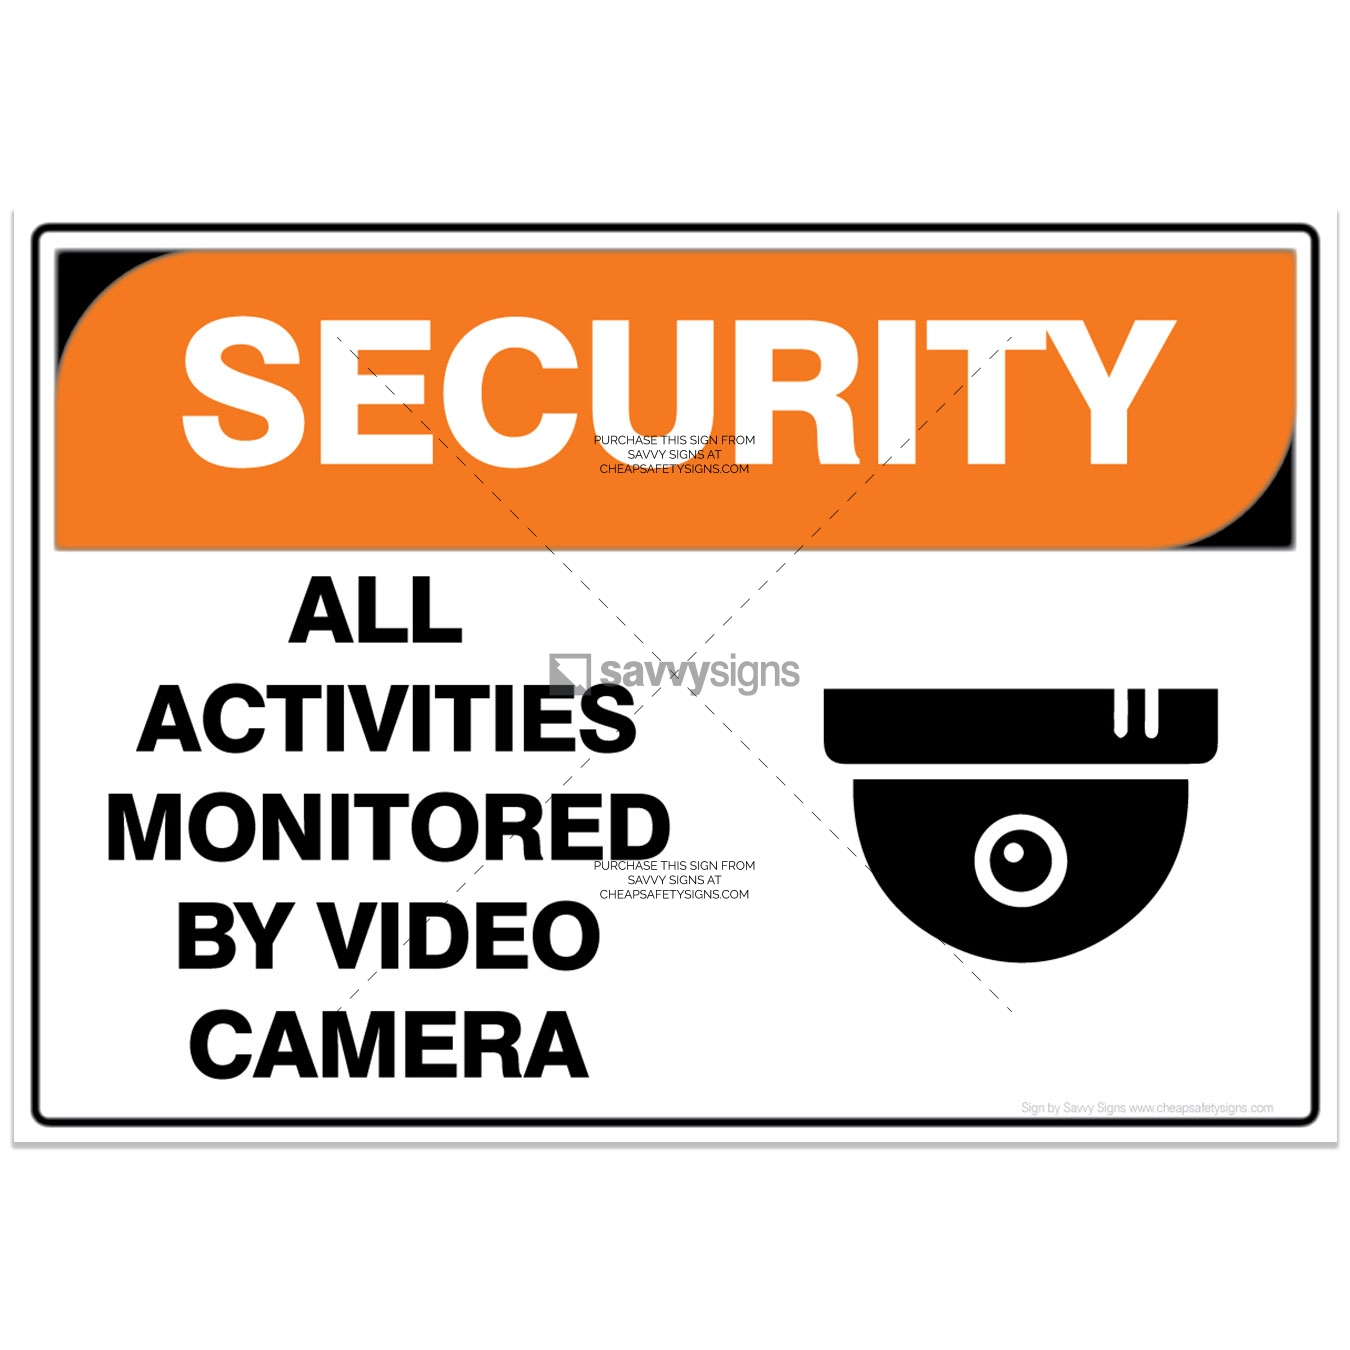 SSSEC3004-SECURITY-Workplace-Safety-Signs_Savvy-Signs_v3